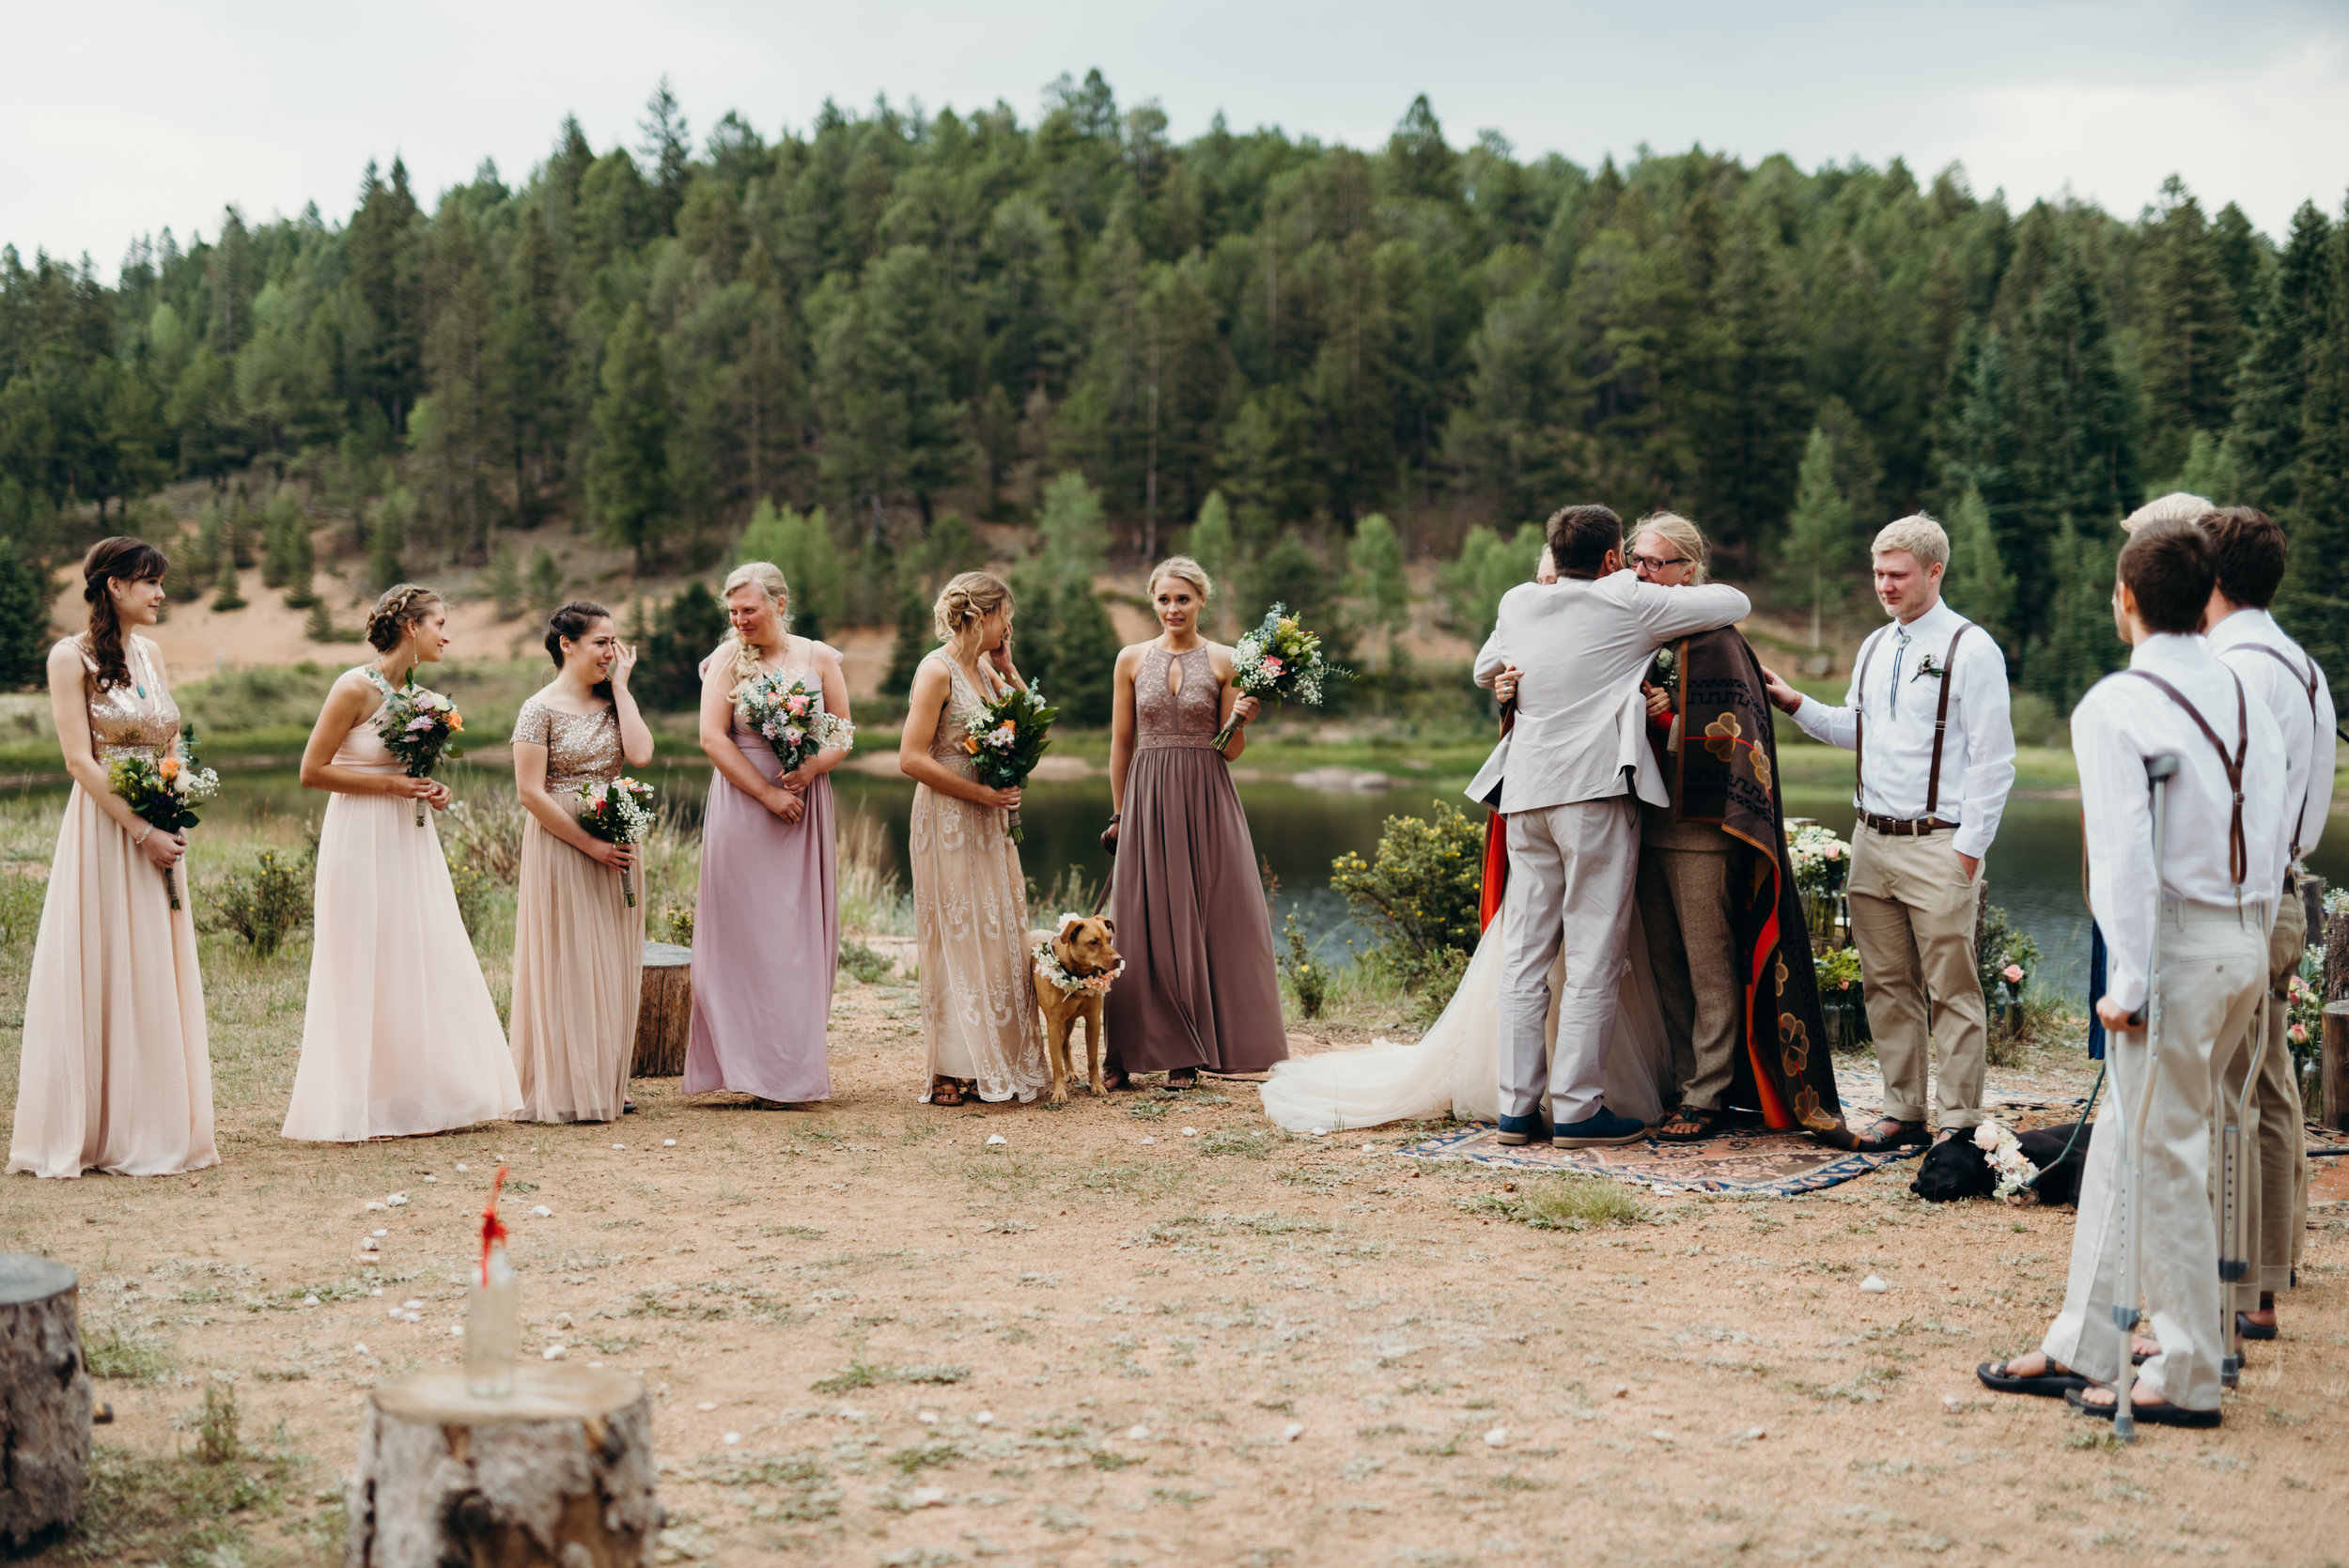 Ally & Jared's emotional ceremony / Rustic Colorado mountain / diy / summer camp wedding